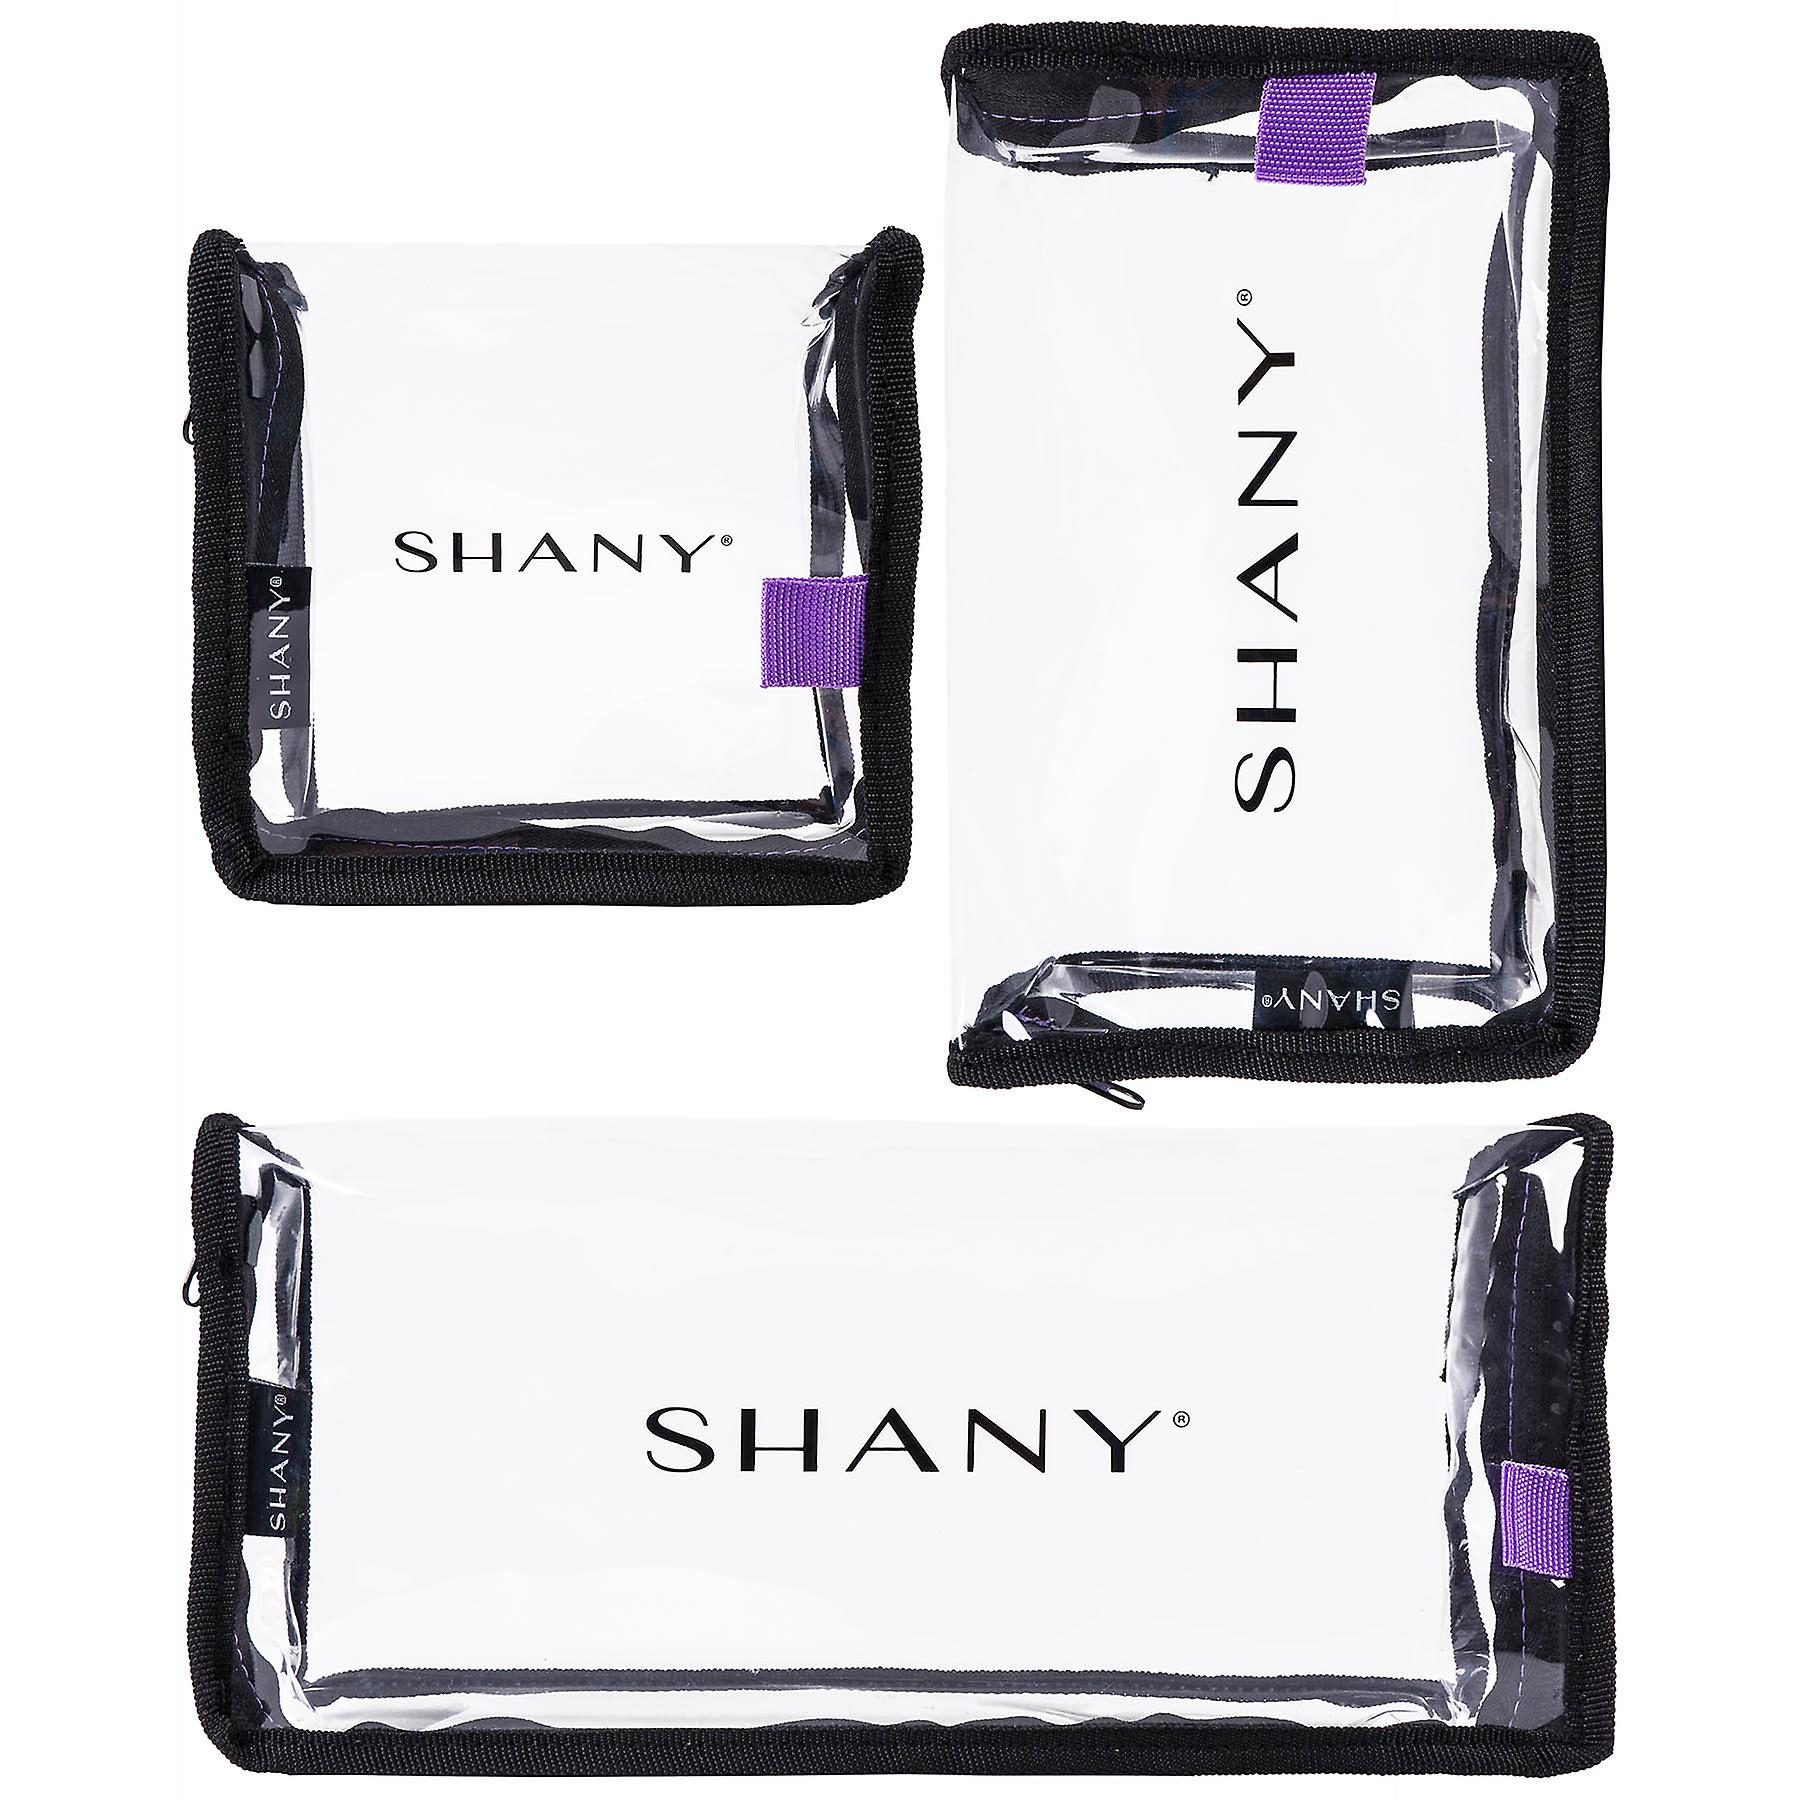 SHANY Cosmetics Traveling Makeup Artist Bag Set of 3 – Clear, Water-resistant Organizers in Small, Medium, and Large – Travel Trio